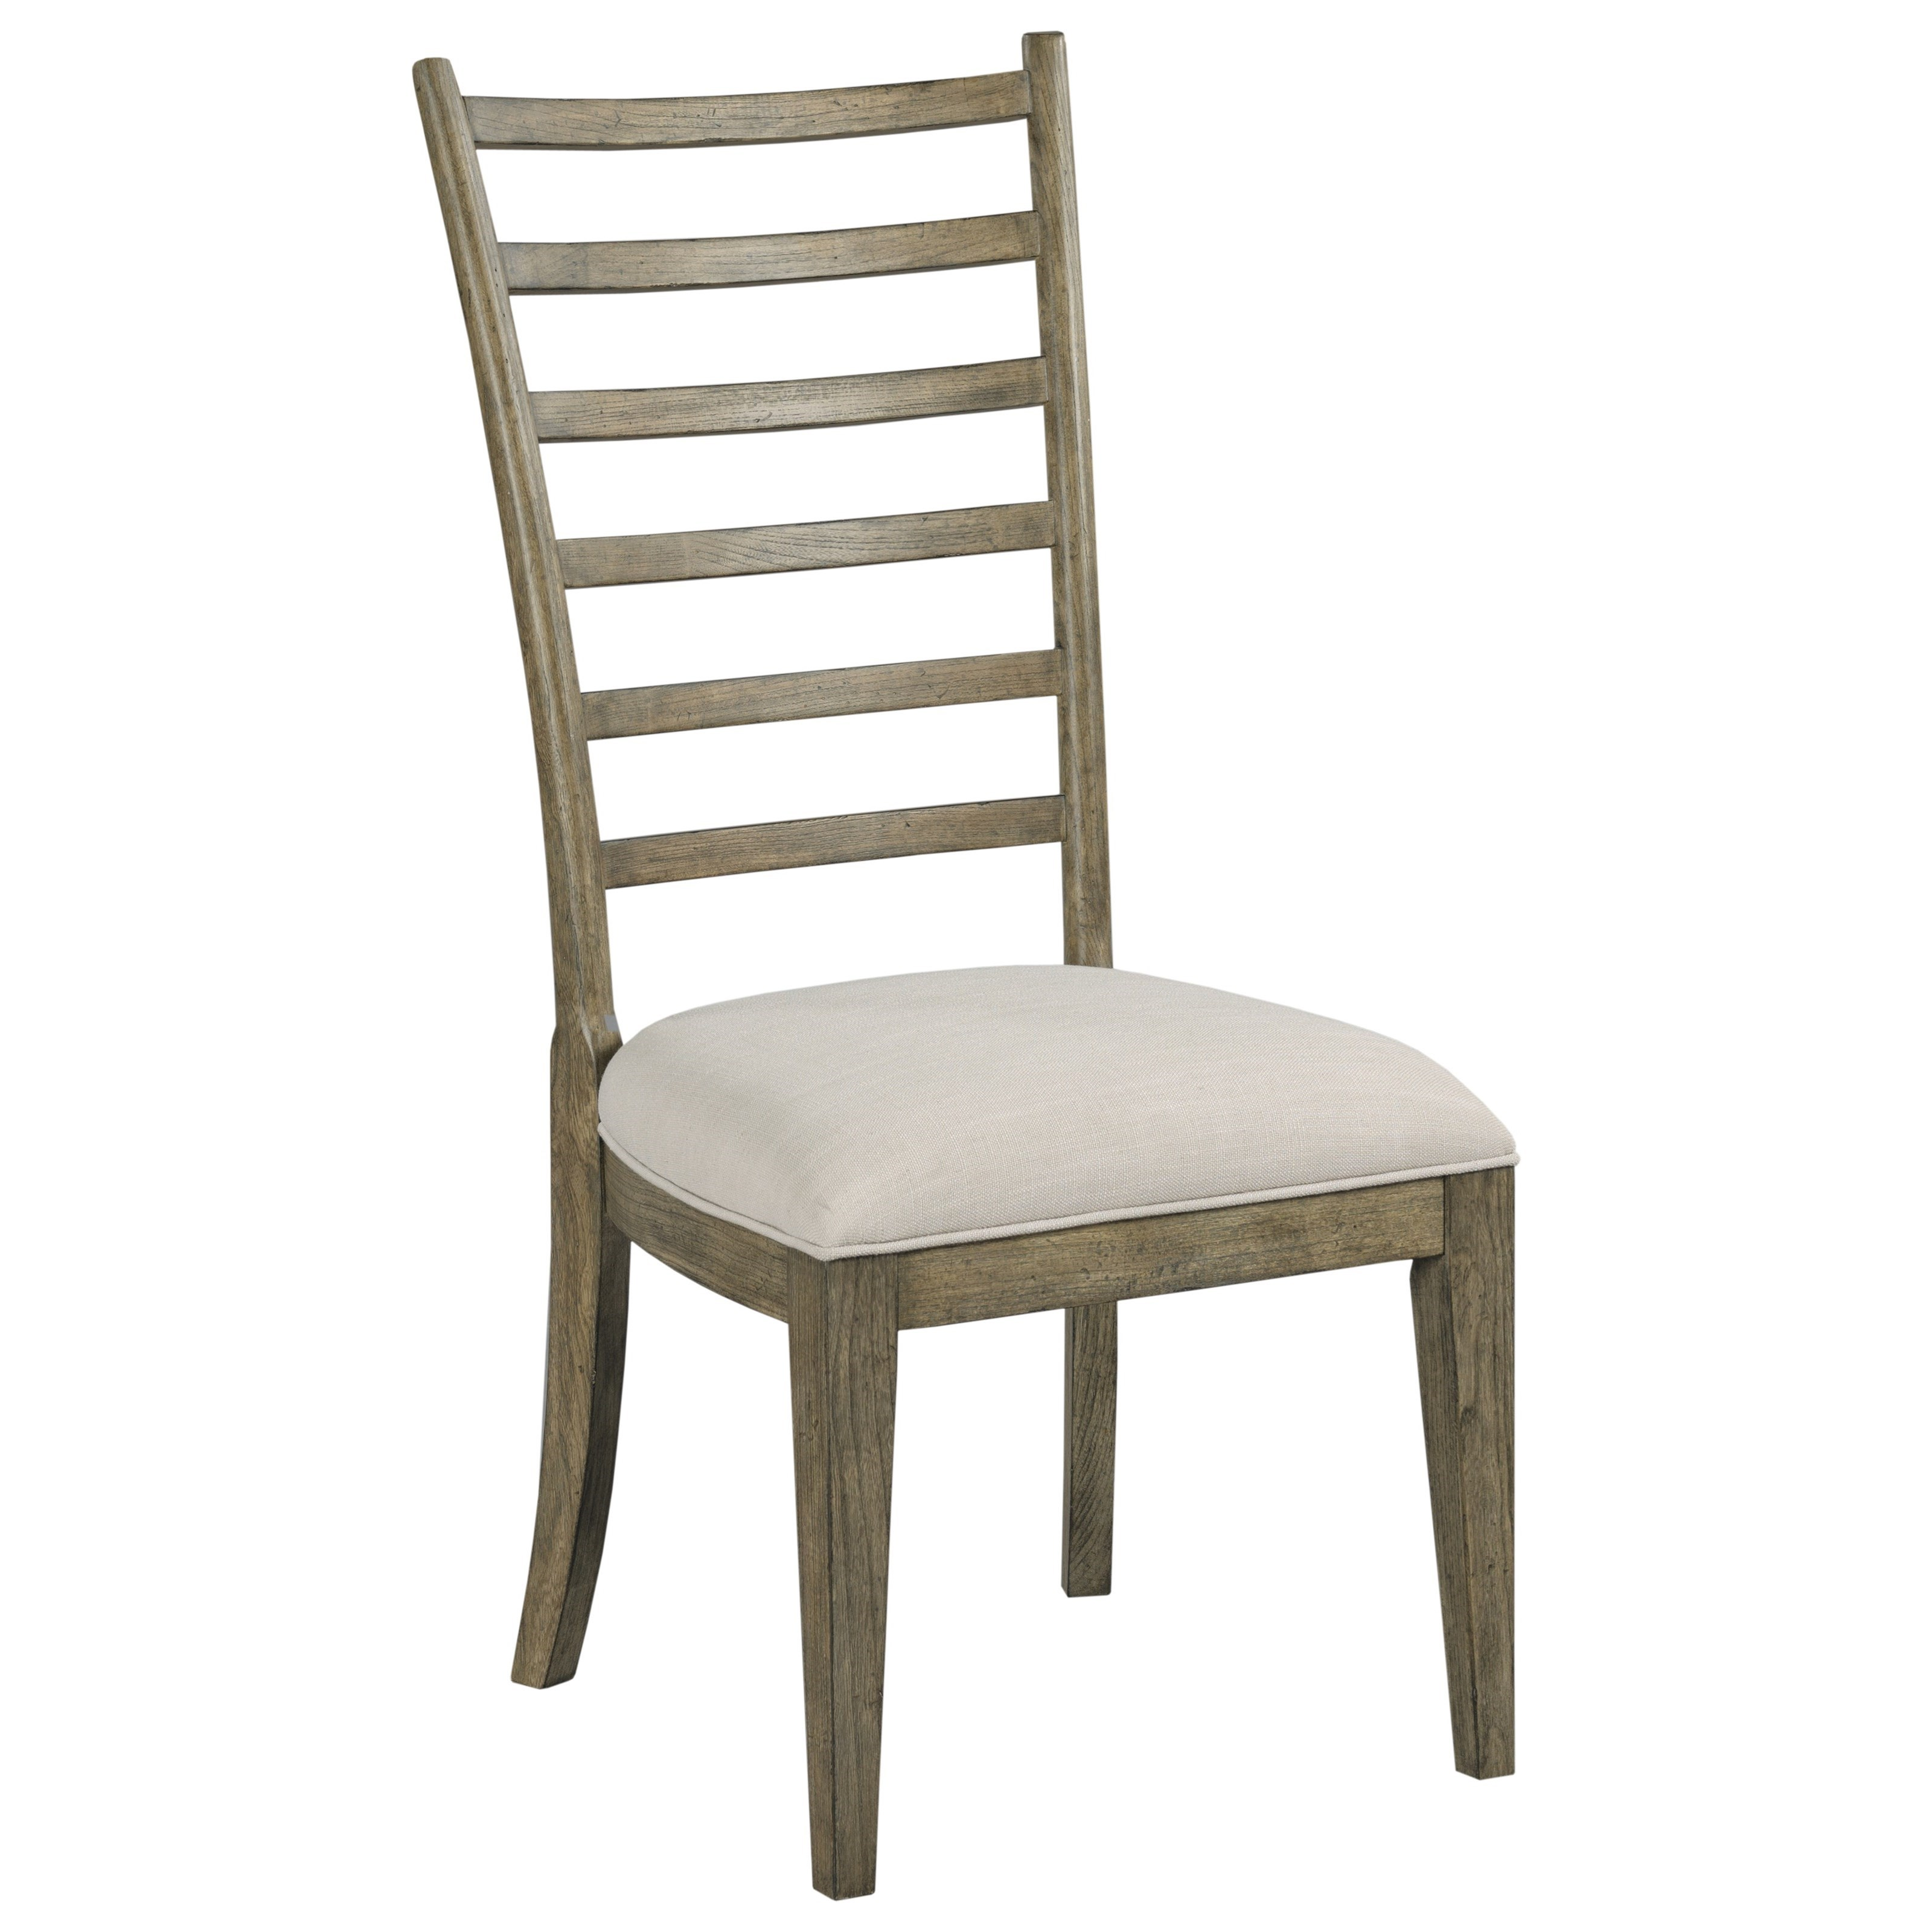 Plank Road Oakley Side Chair                            by Kincaid Furniture at Johnny Janosik